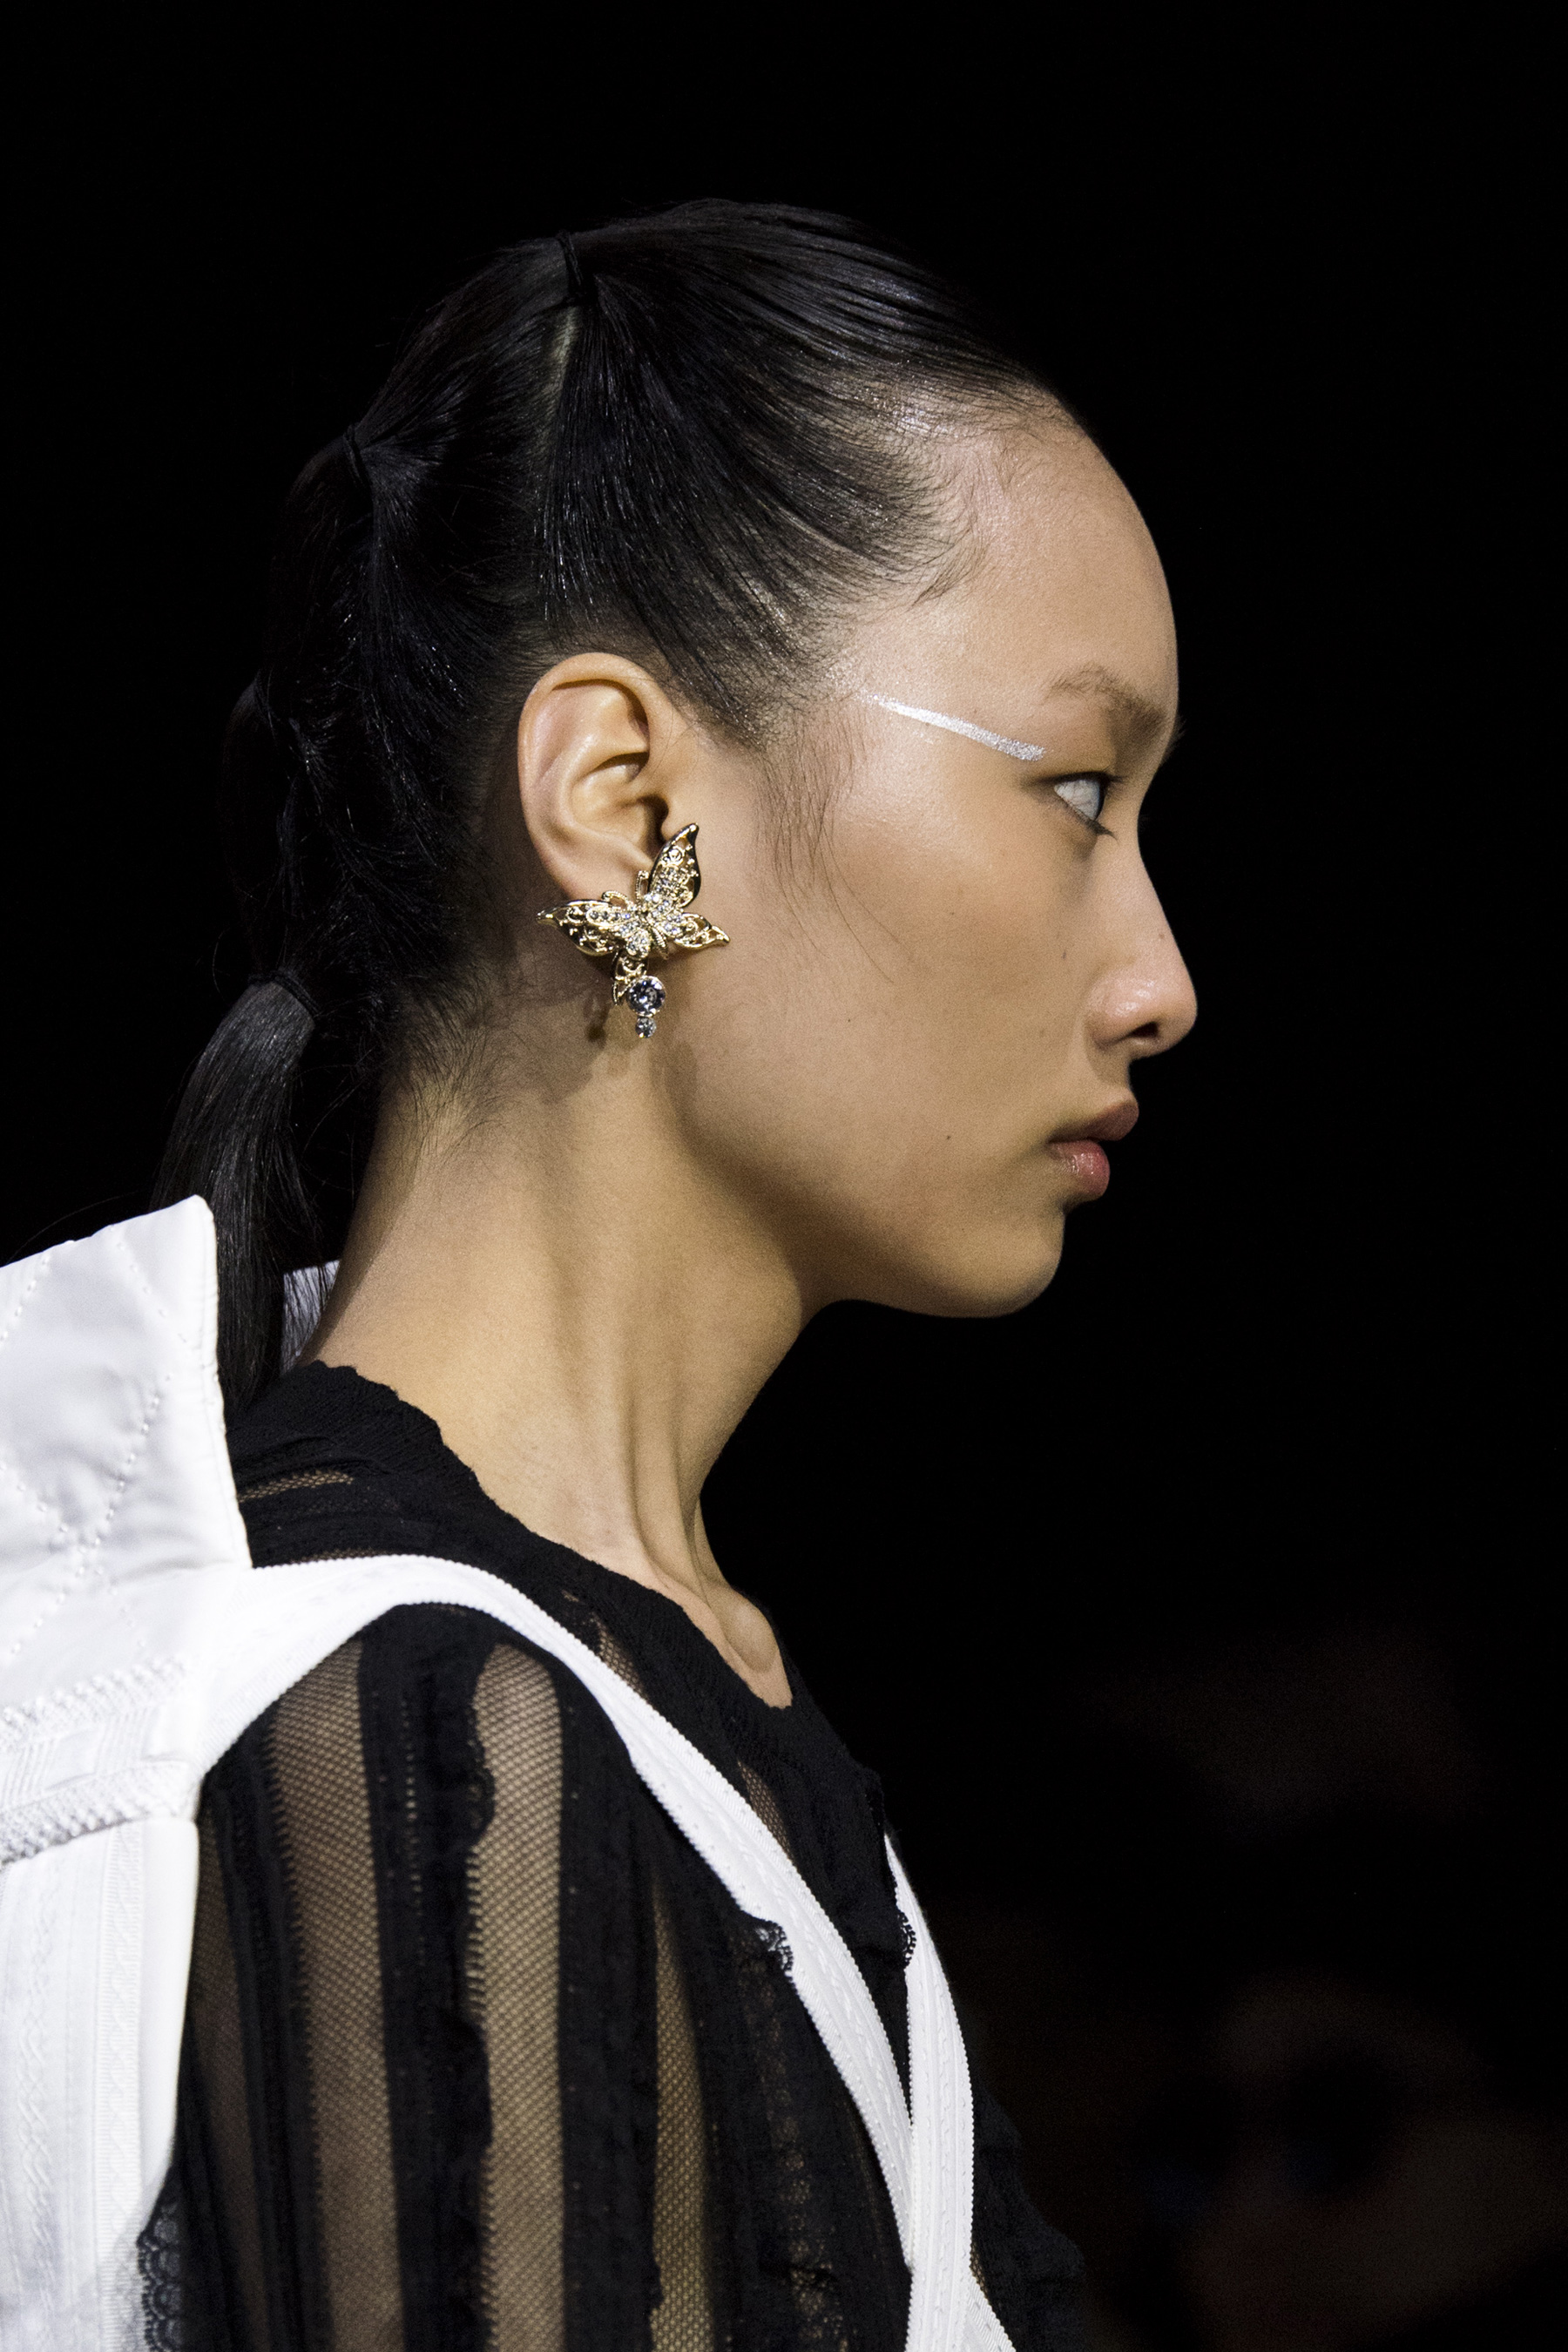 Shiatzychen Fall 2019 Fashion Show Details